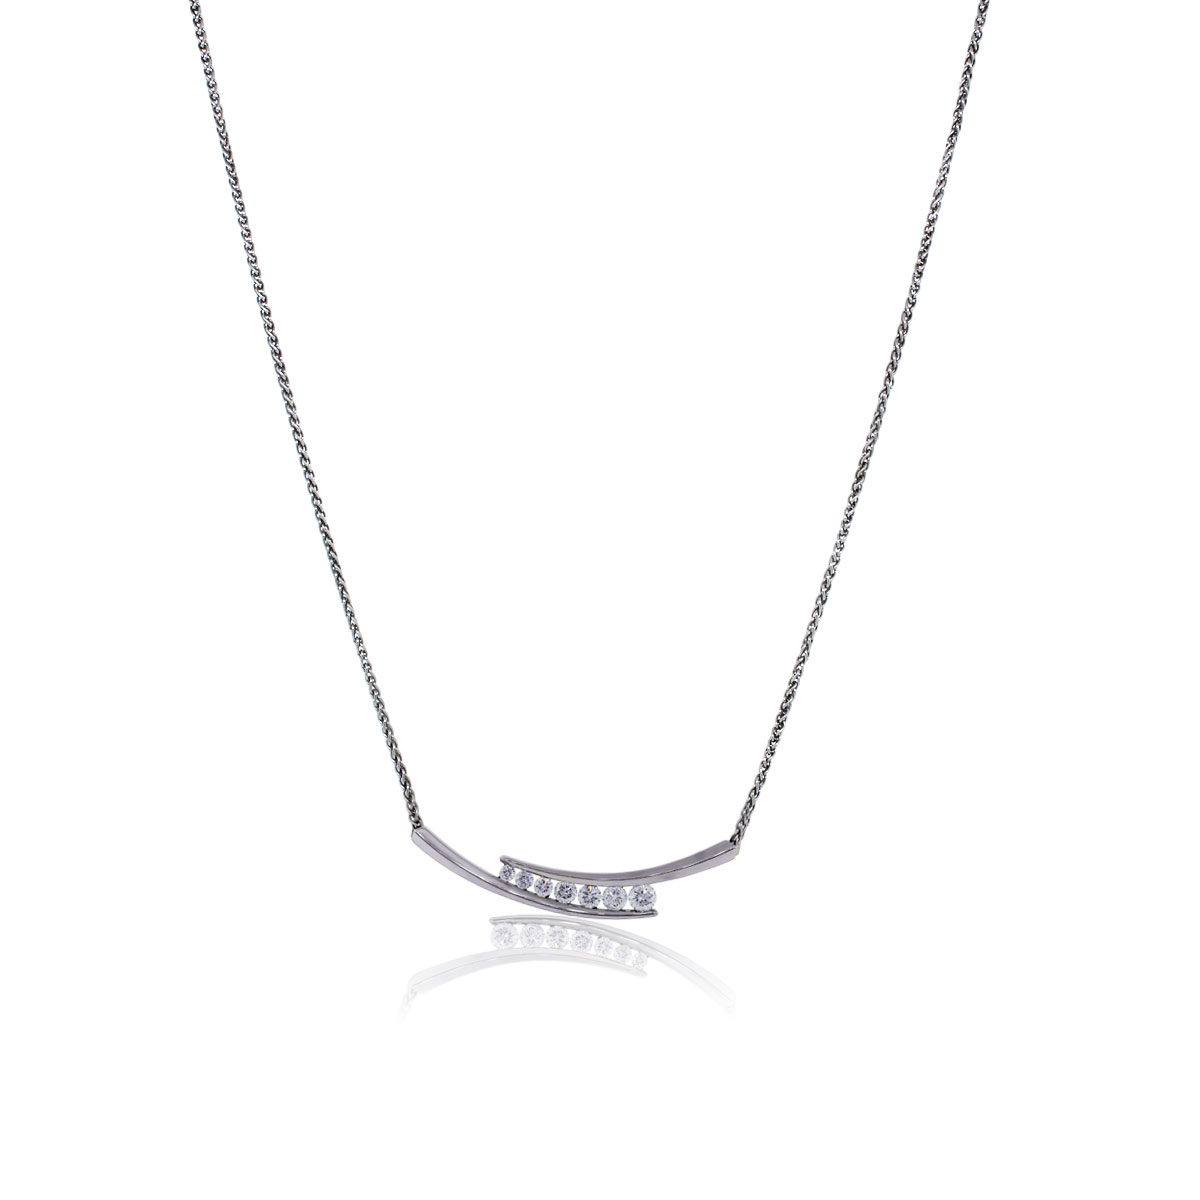 You are viewing this 14k White Gold Diamond Bar Necklace!